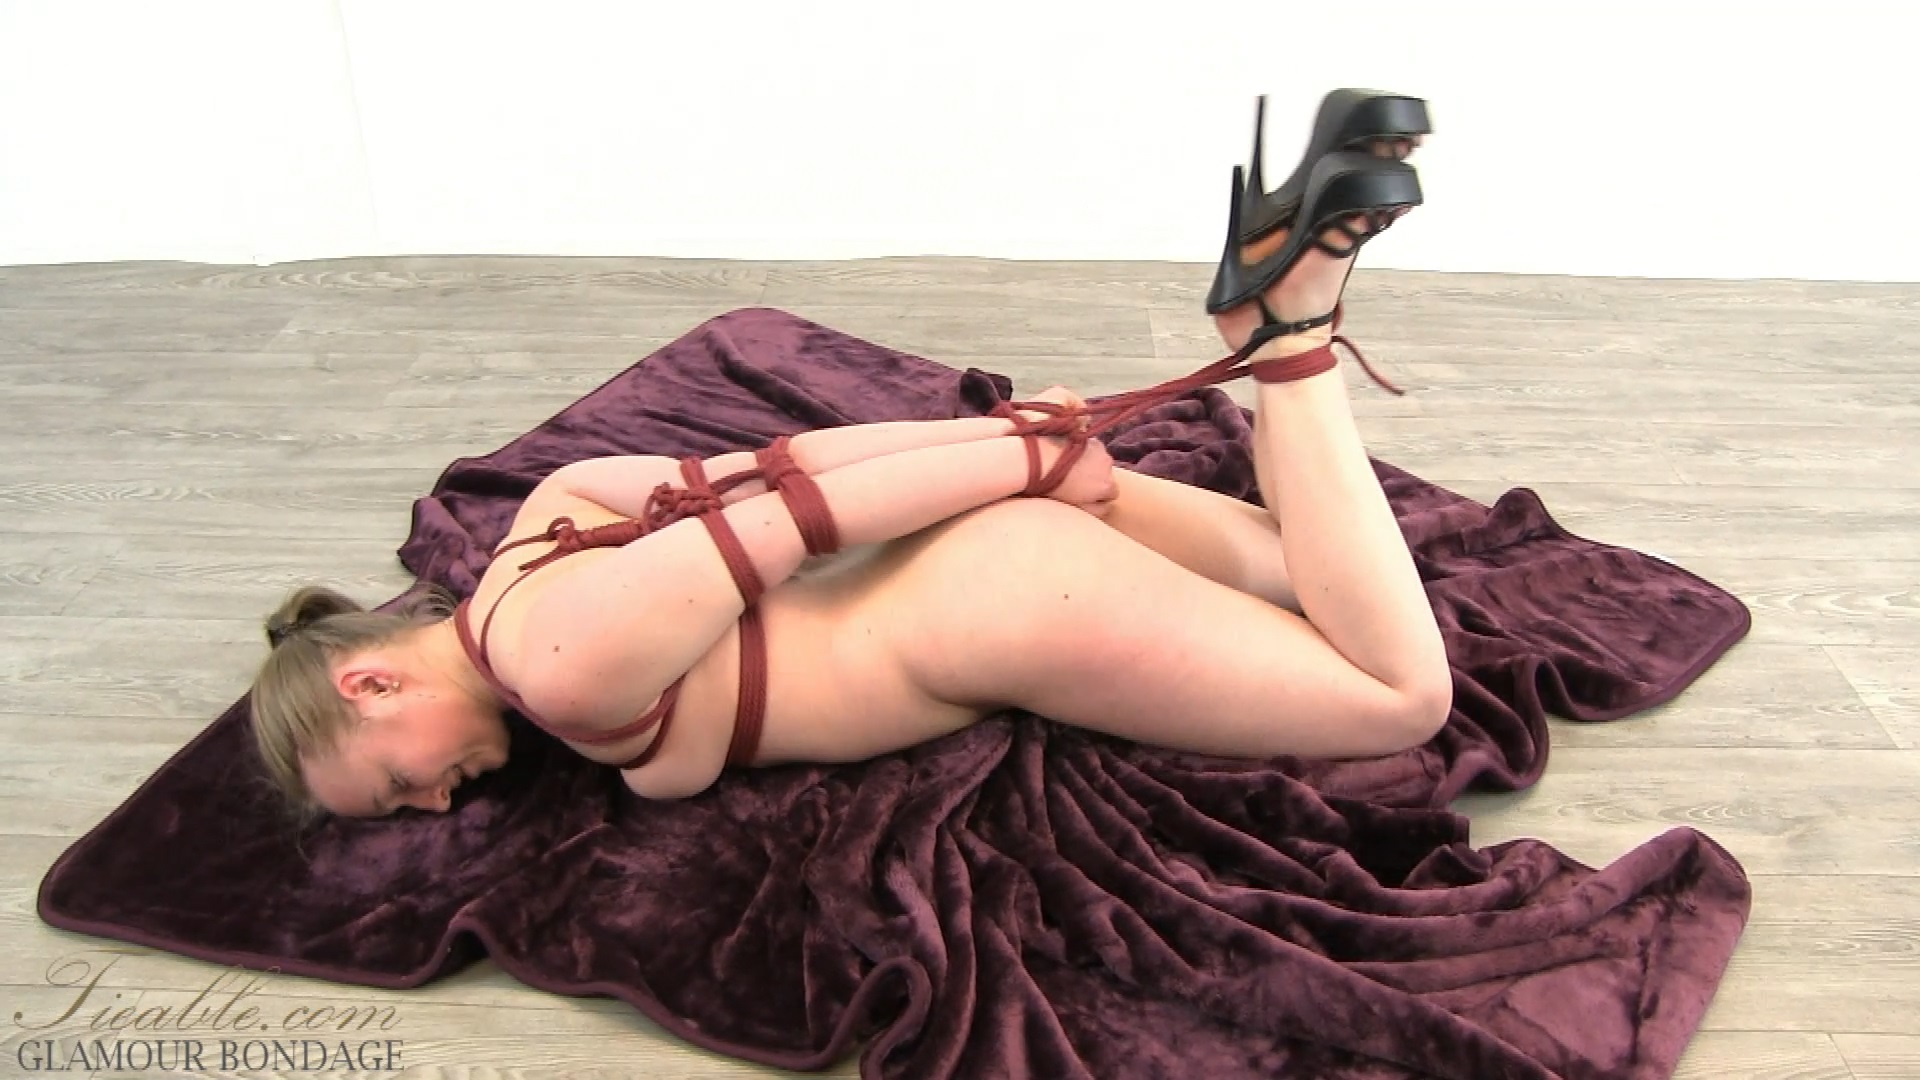 Kerry_bondage talent